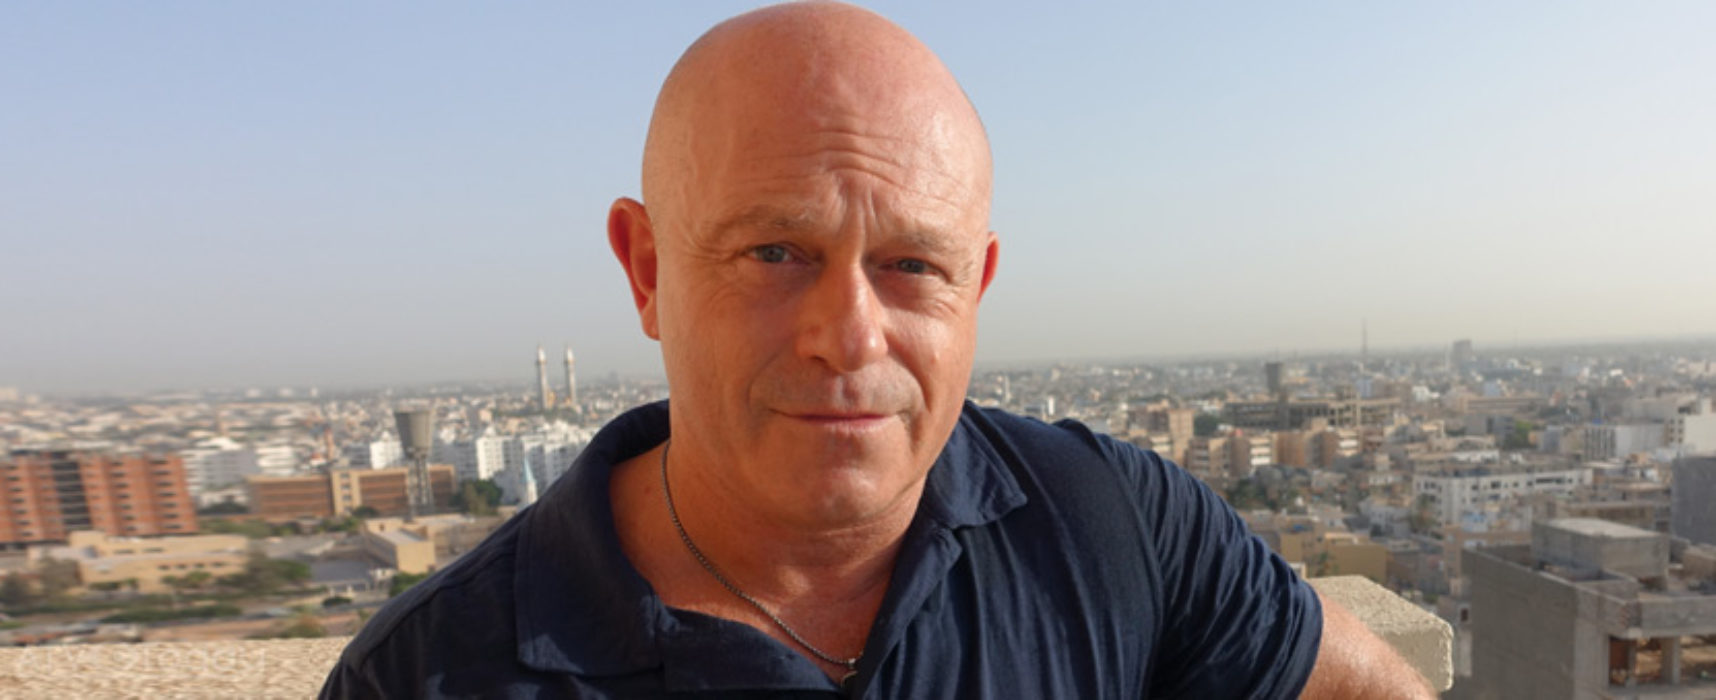 Ross Kemp joins Libya's Migrants on their journey into Europe